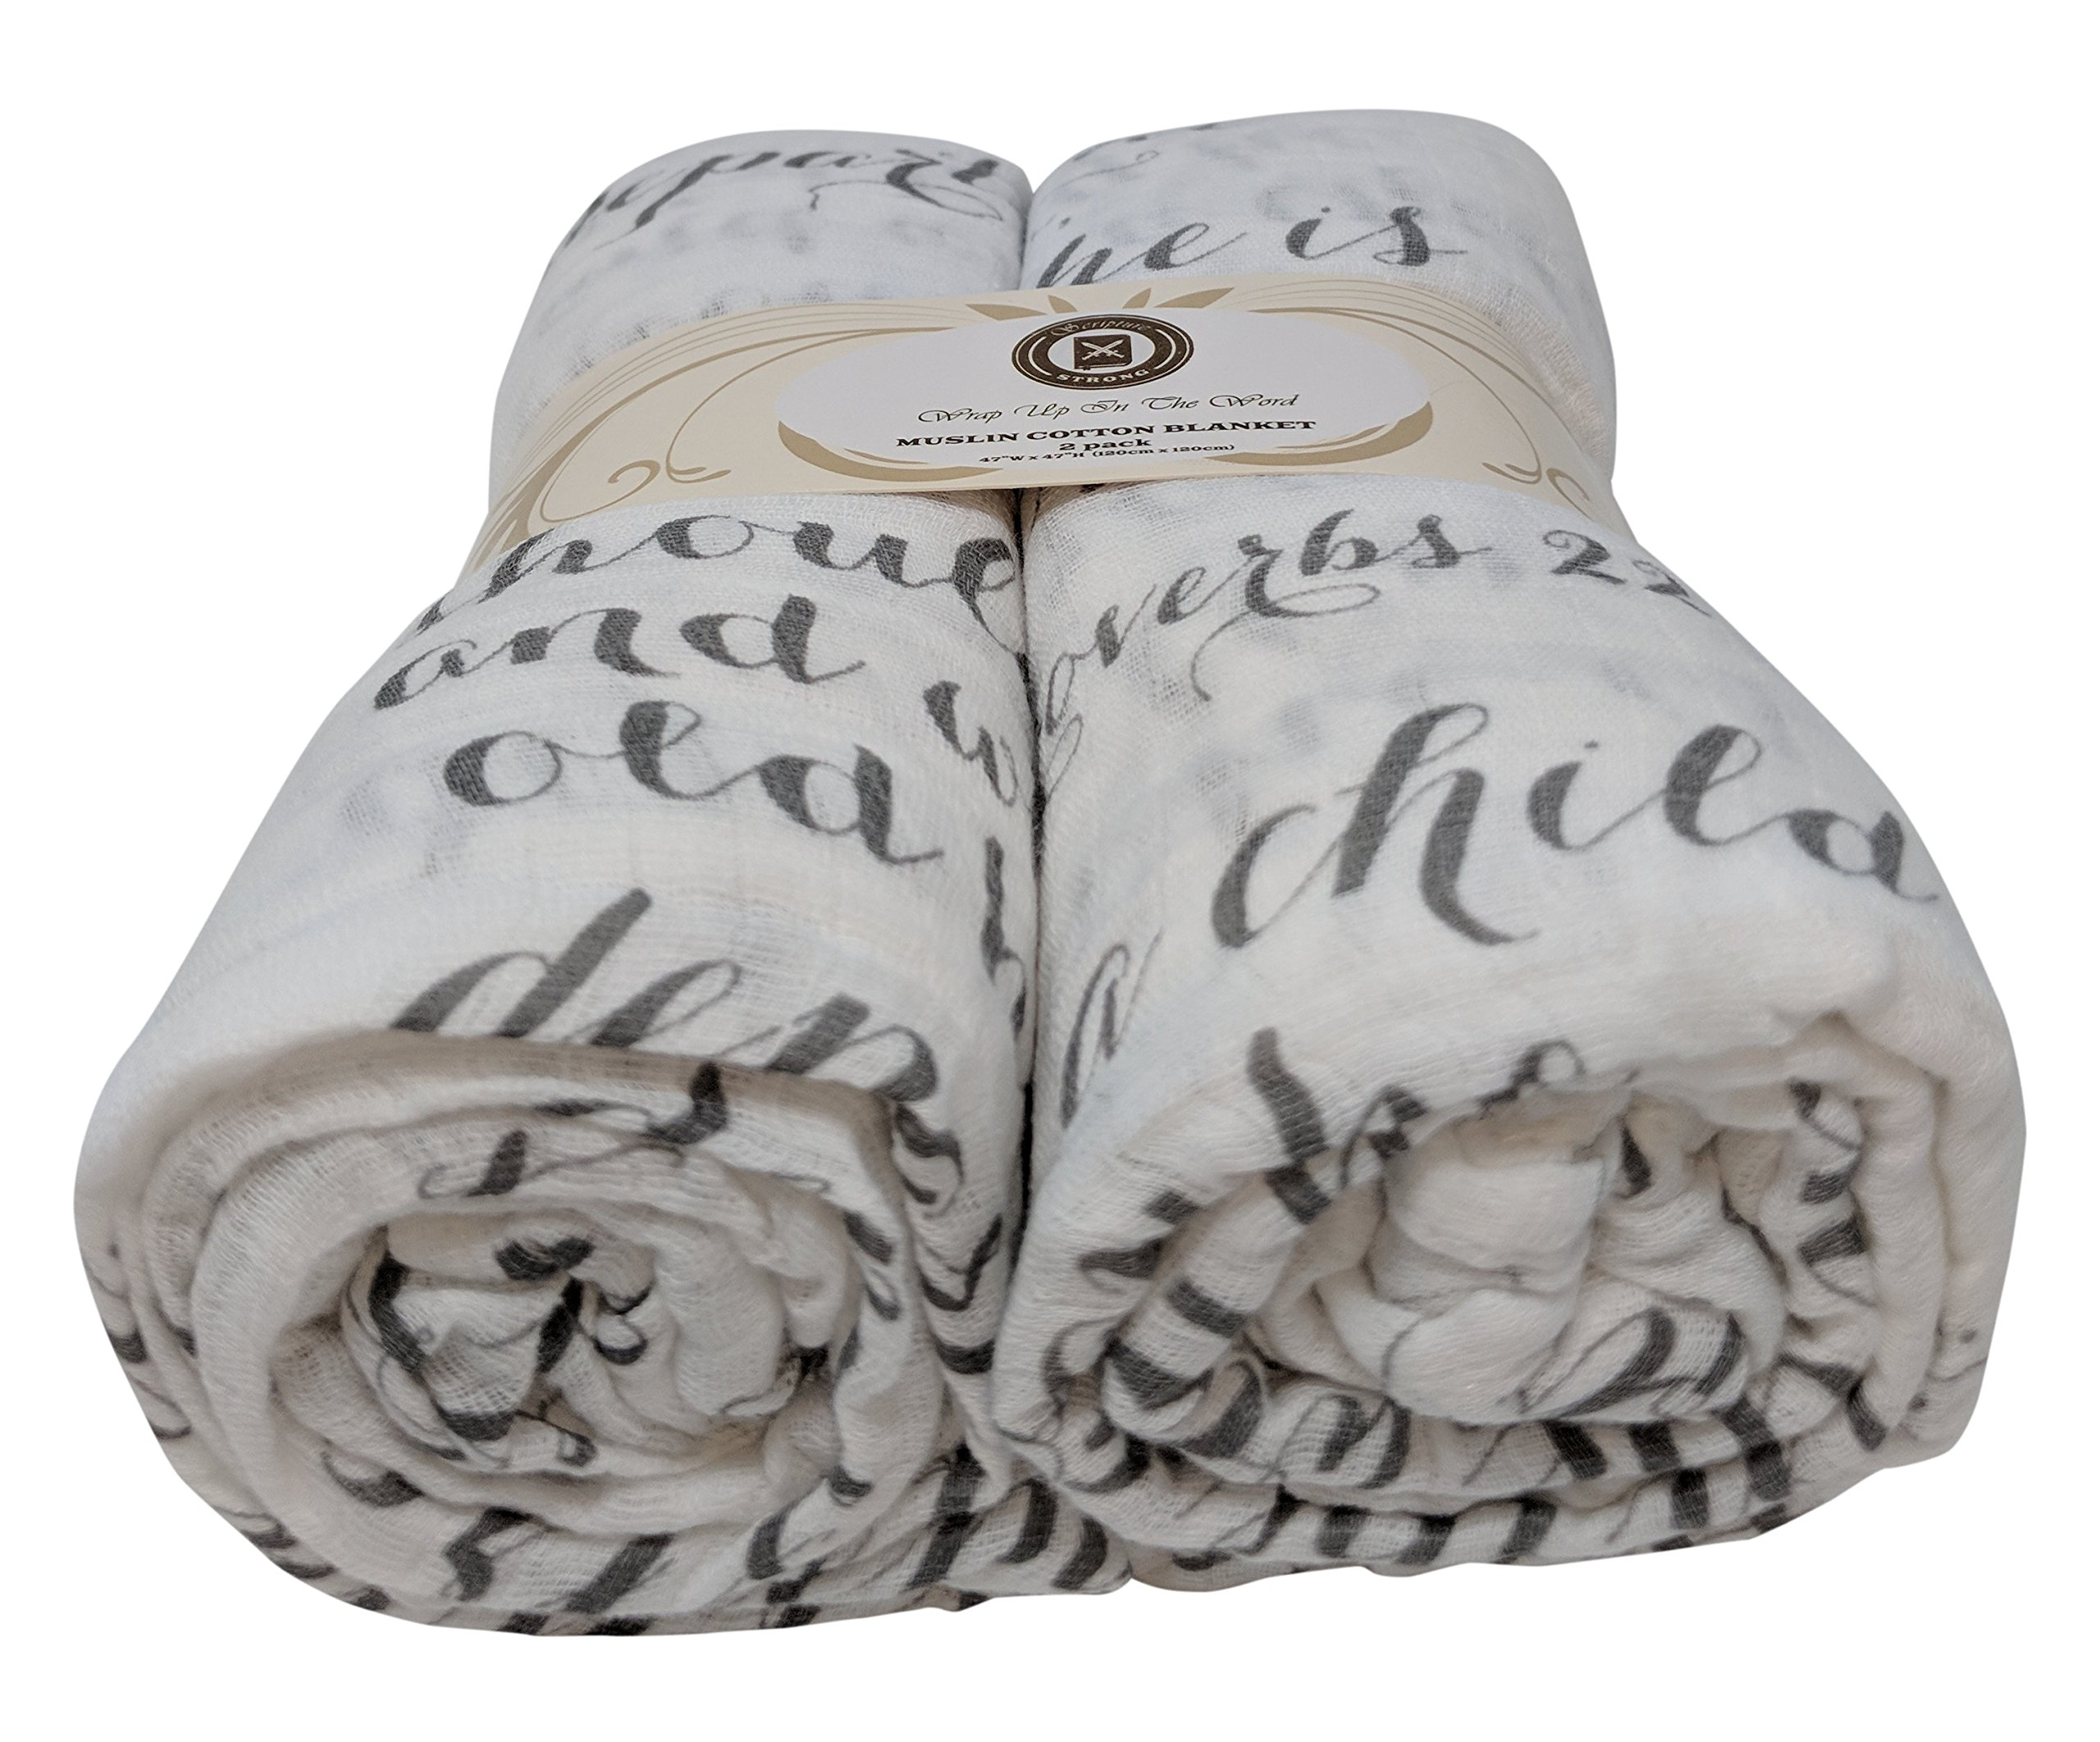 Scripture Strong Proverbs 22:6 | Best Muslin Baby Swaddle Blanket Gift Set | 100% Cotton Receiving Blankets | Extra Large (4'x4') | Gray, 2 Pack